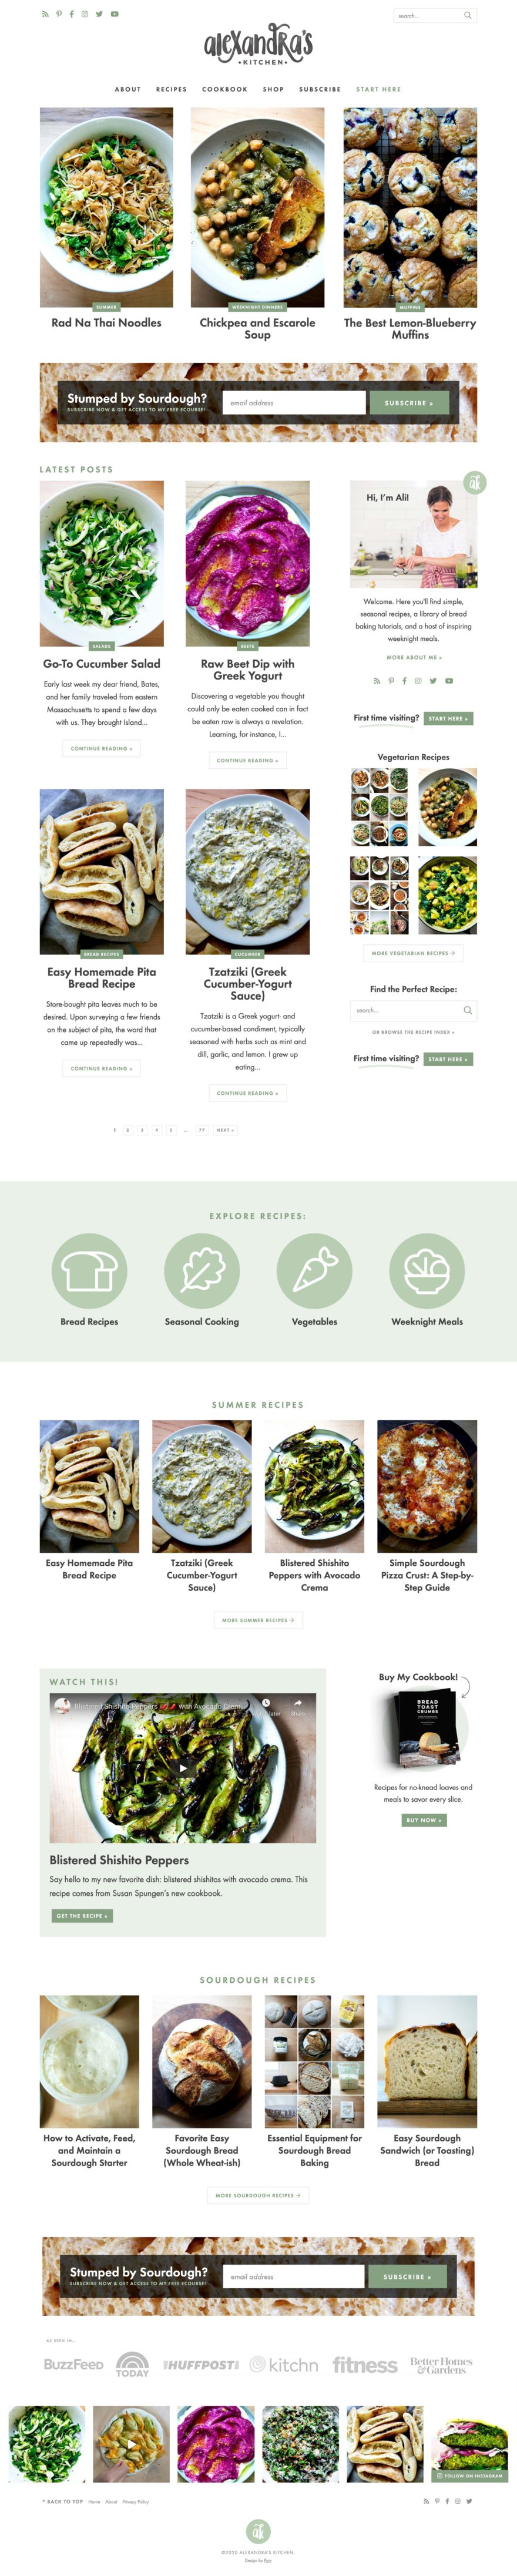 Screenshot of AlexandraCooks.com Homepage